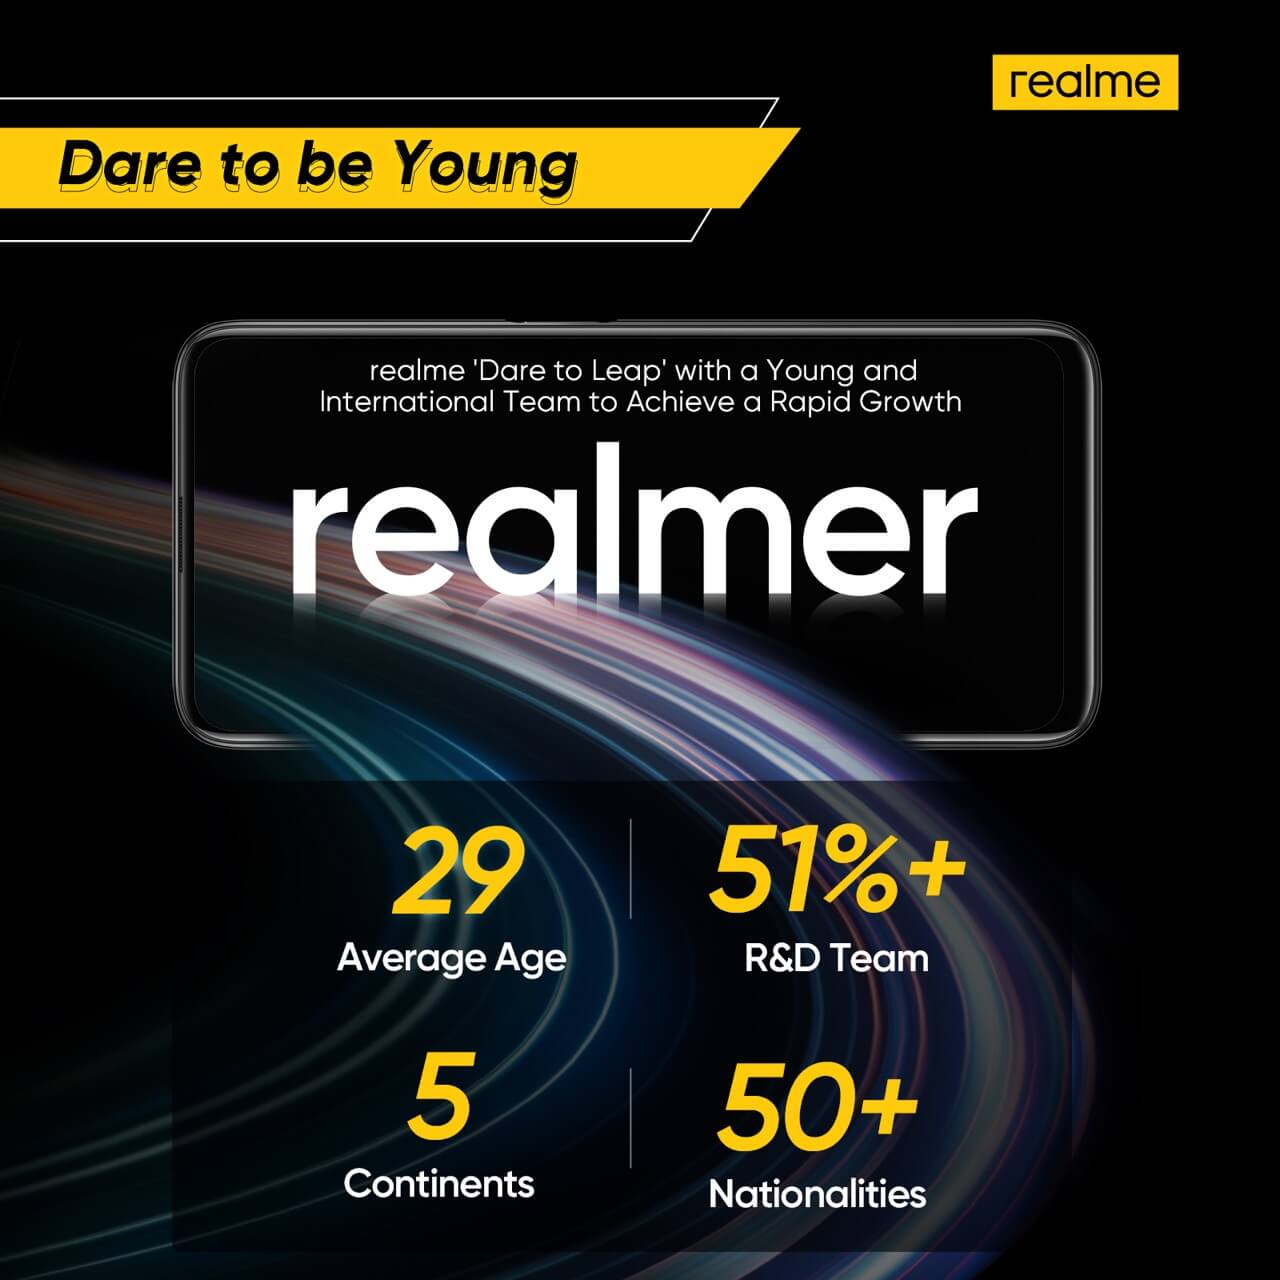 realme Releases H1 2020 Results